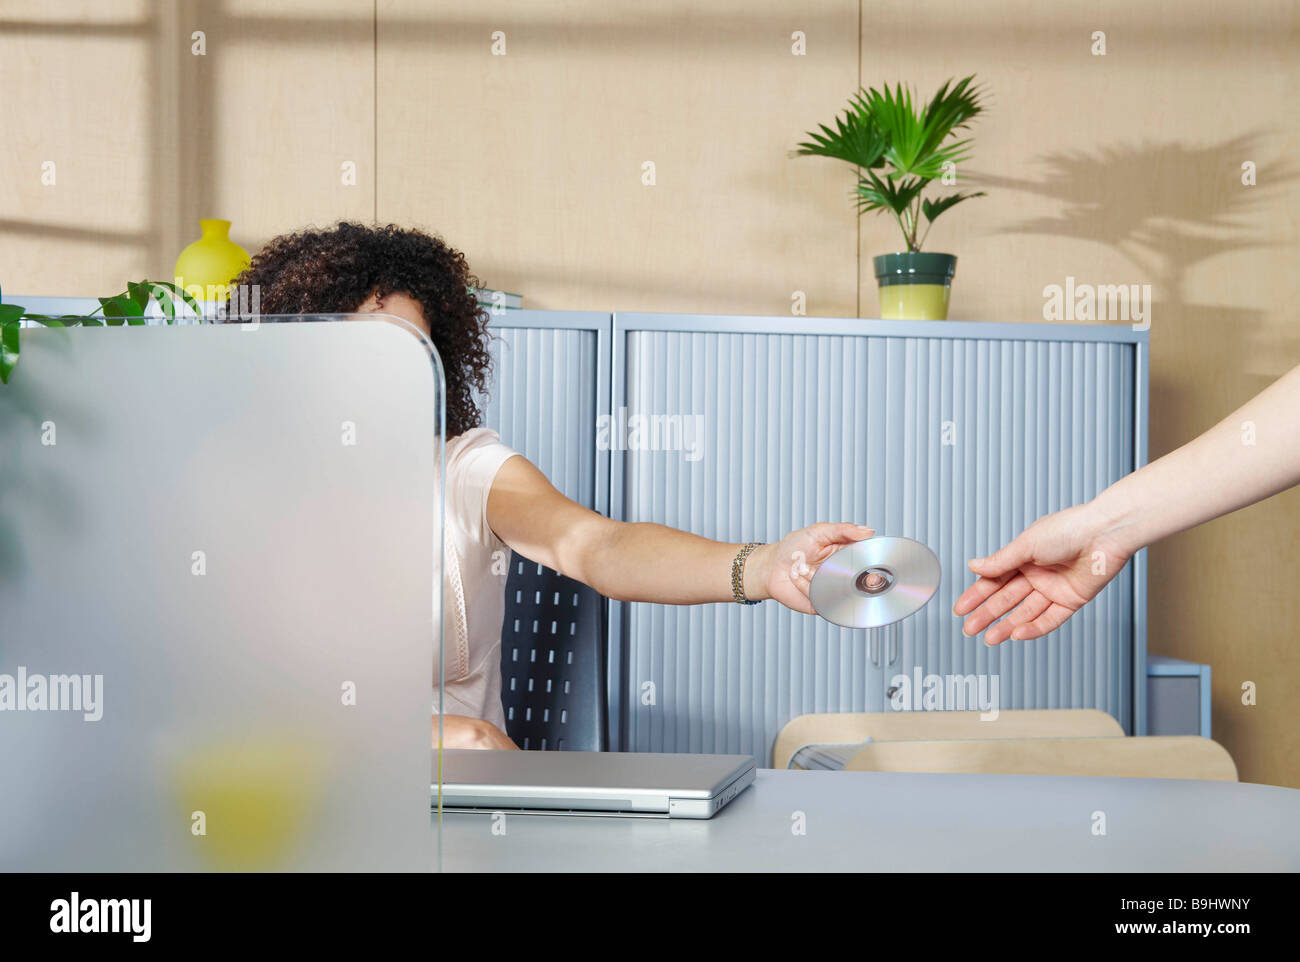 Woman handing over DVD to co-worker - Stock Image